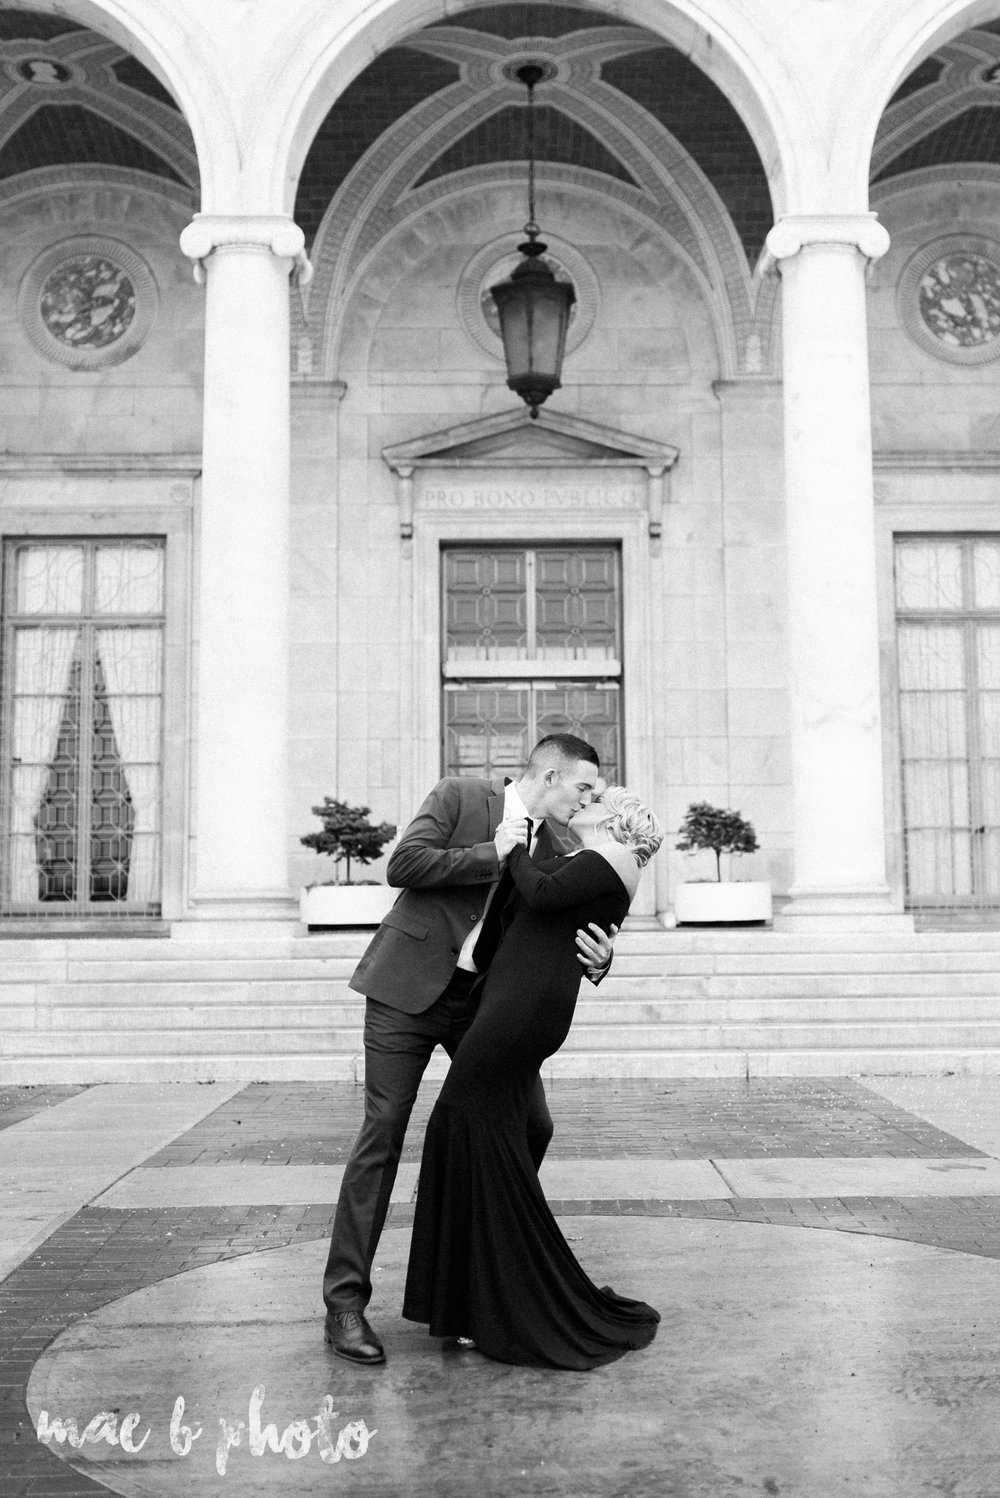 paige and cale's personalized winter glam engagement session at the butler institute of american art and downtown youngstown in youngstown ohio photographed by youngstown wedding photographer mae b photo-4.jpg